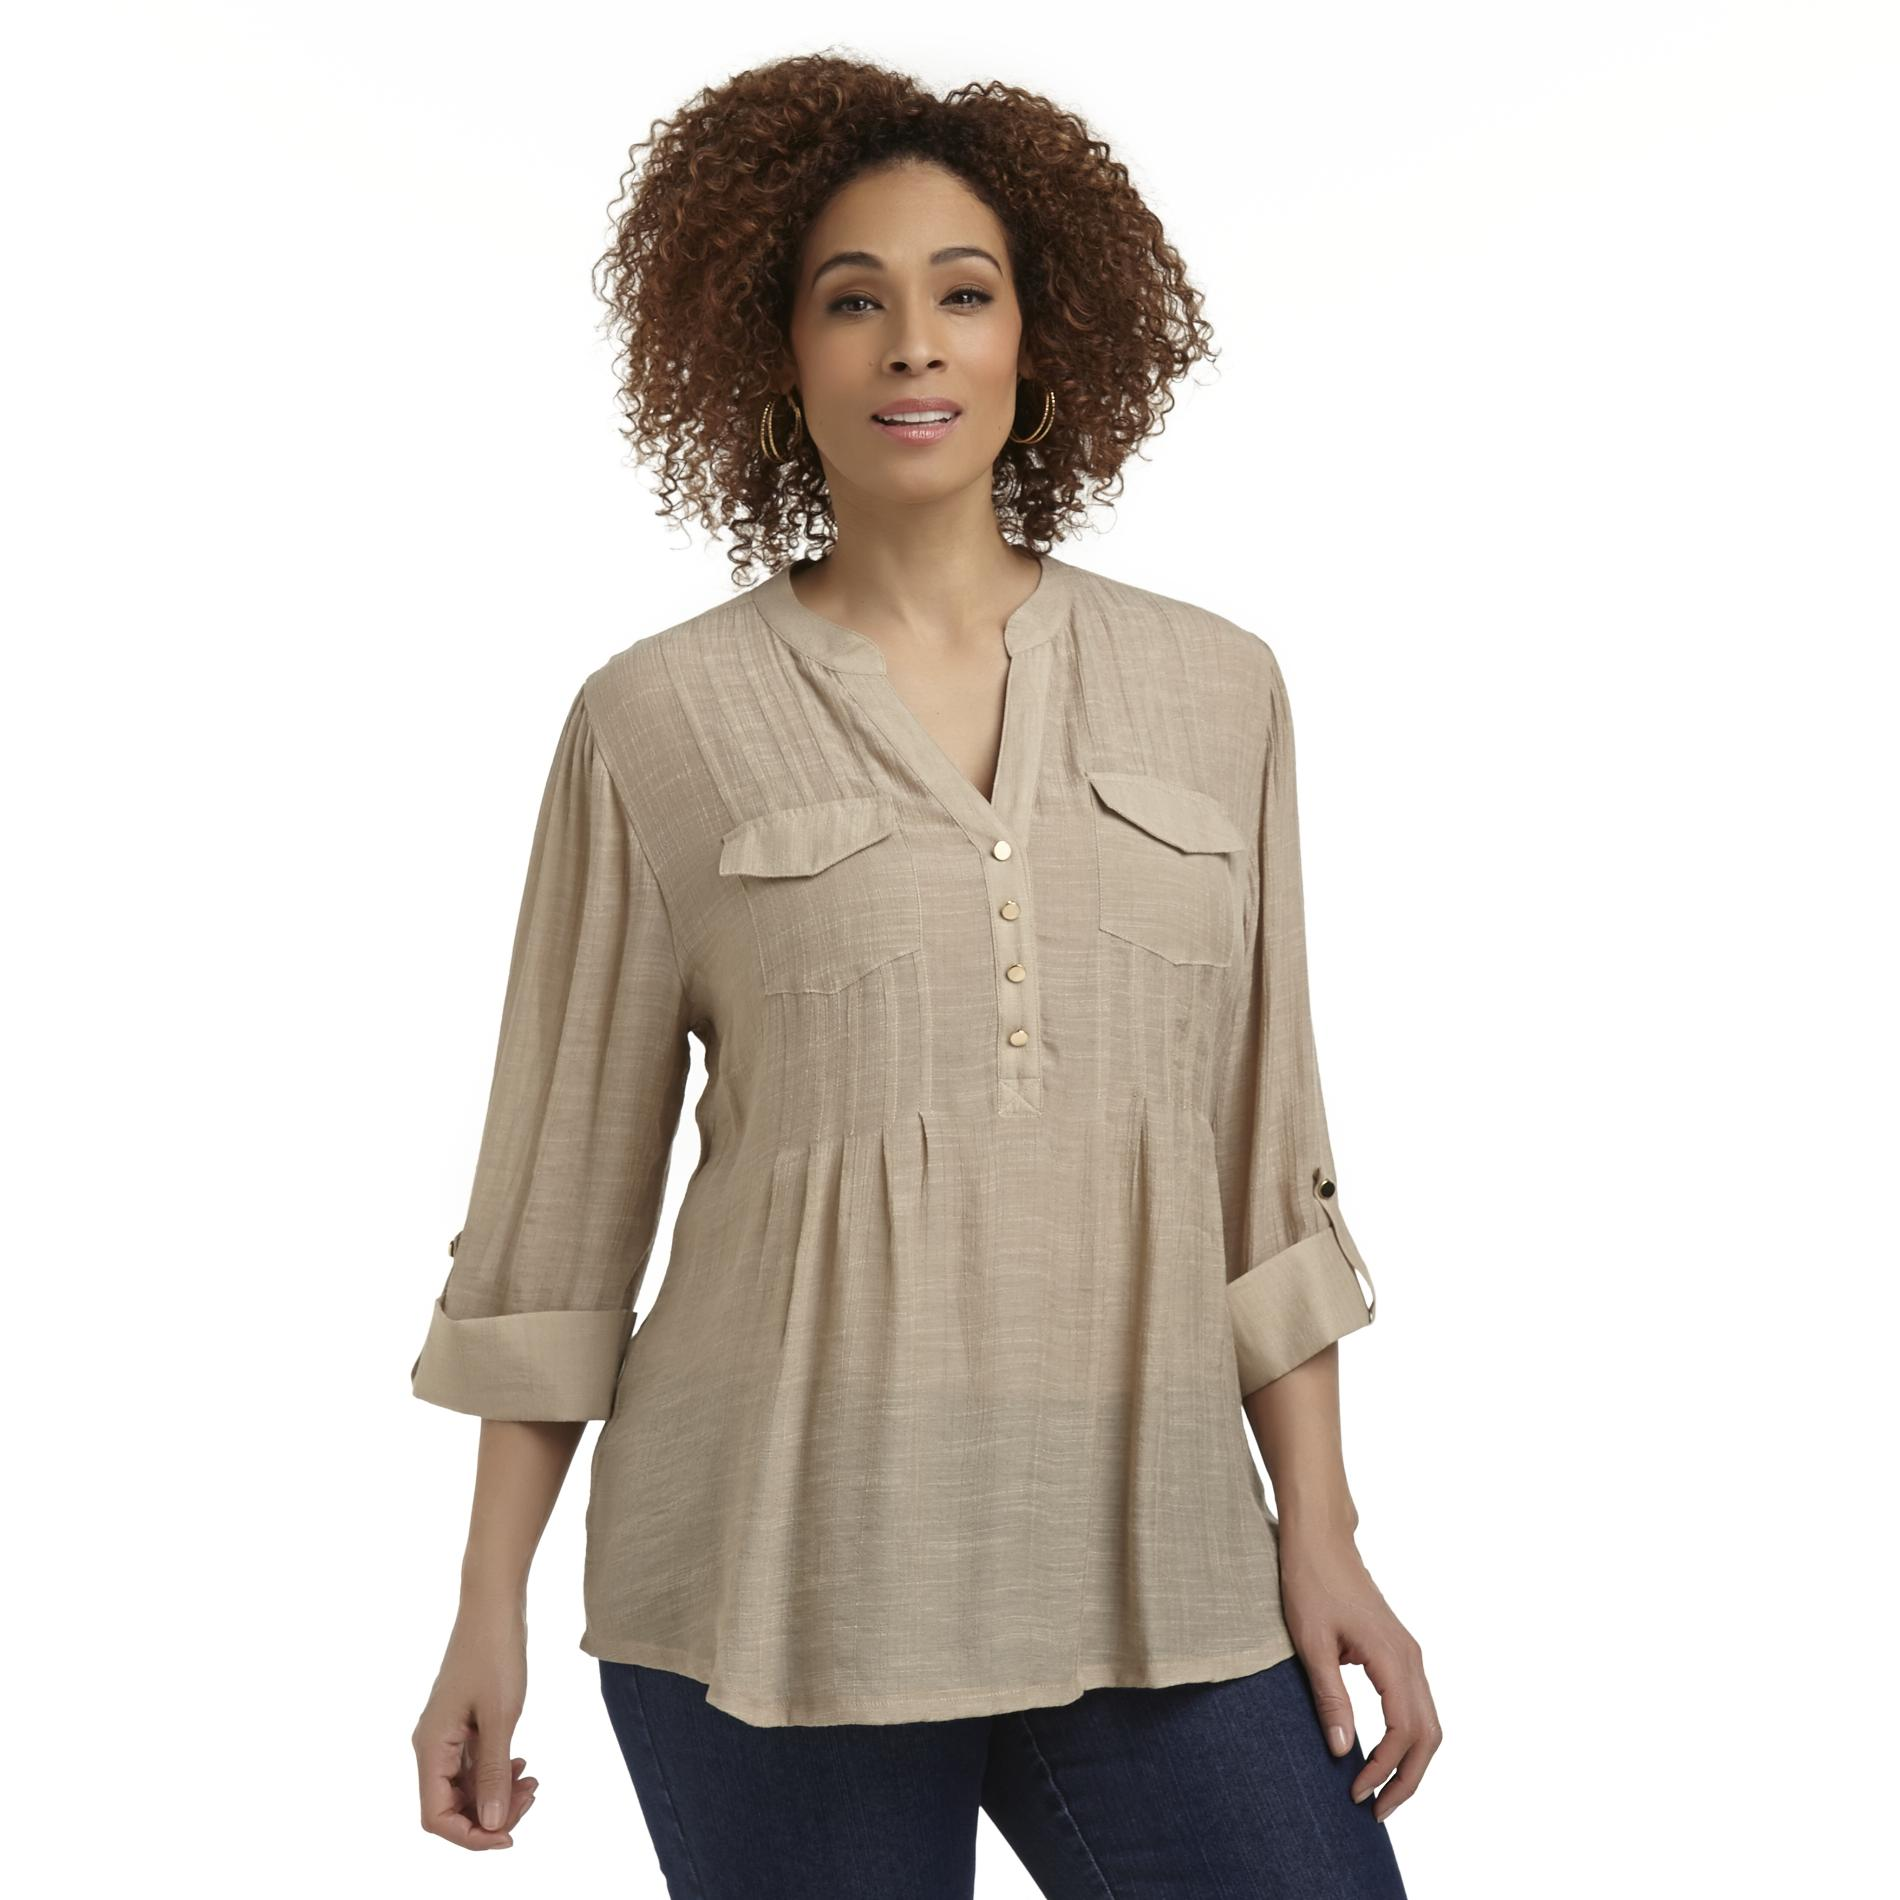 Beverly Drive Women's Plus Tunic Top at Sears.com